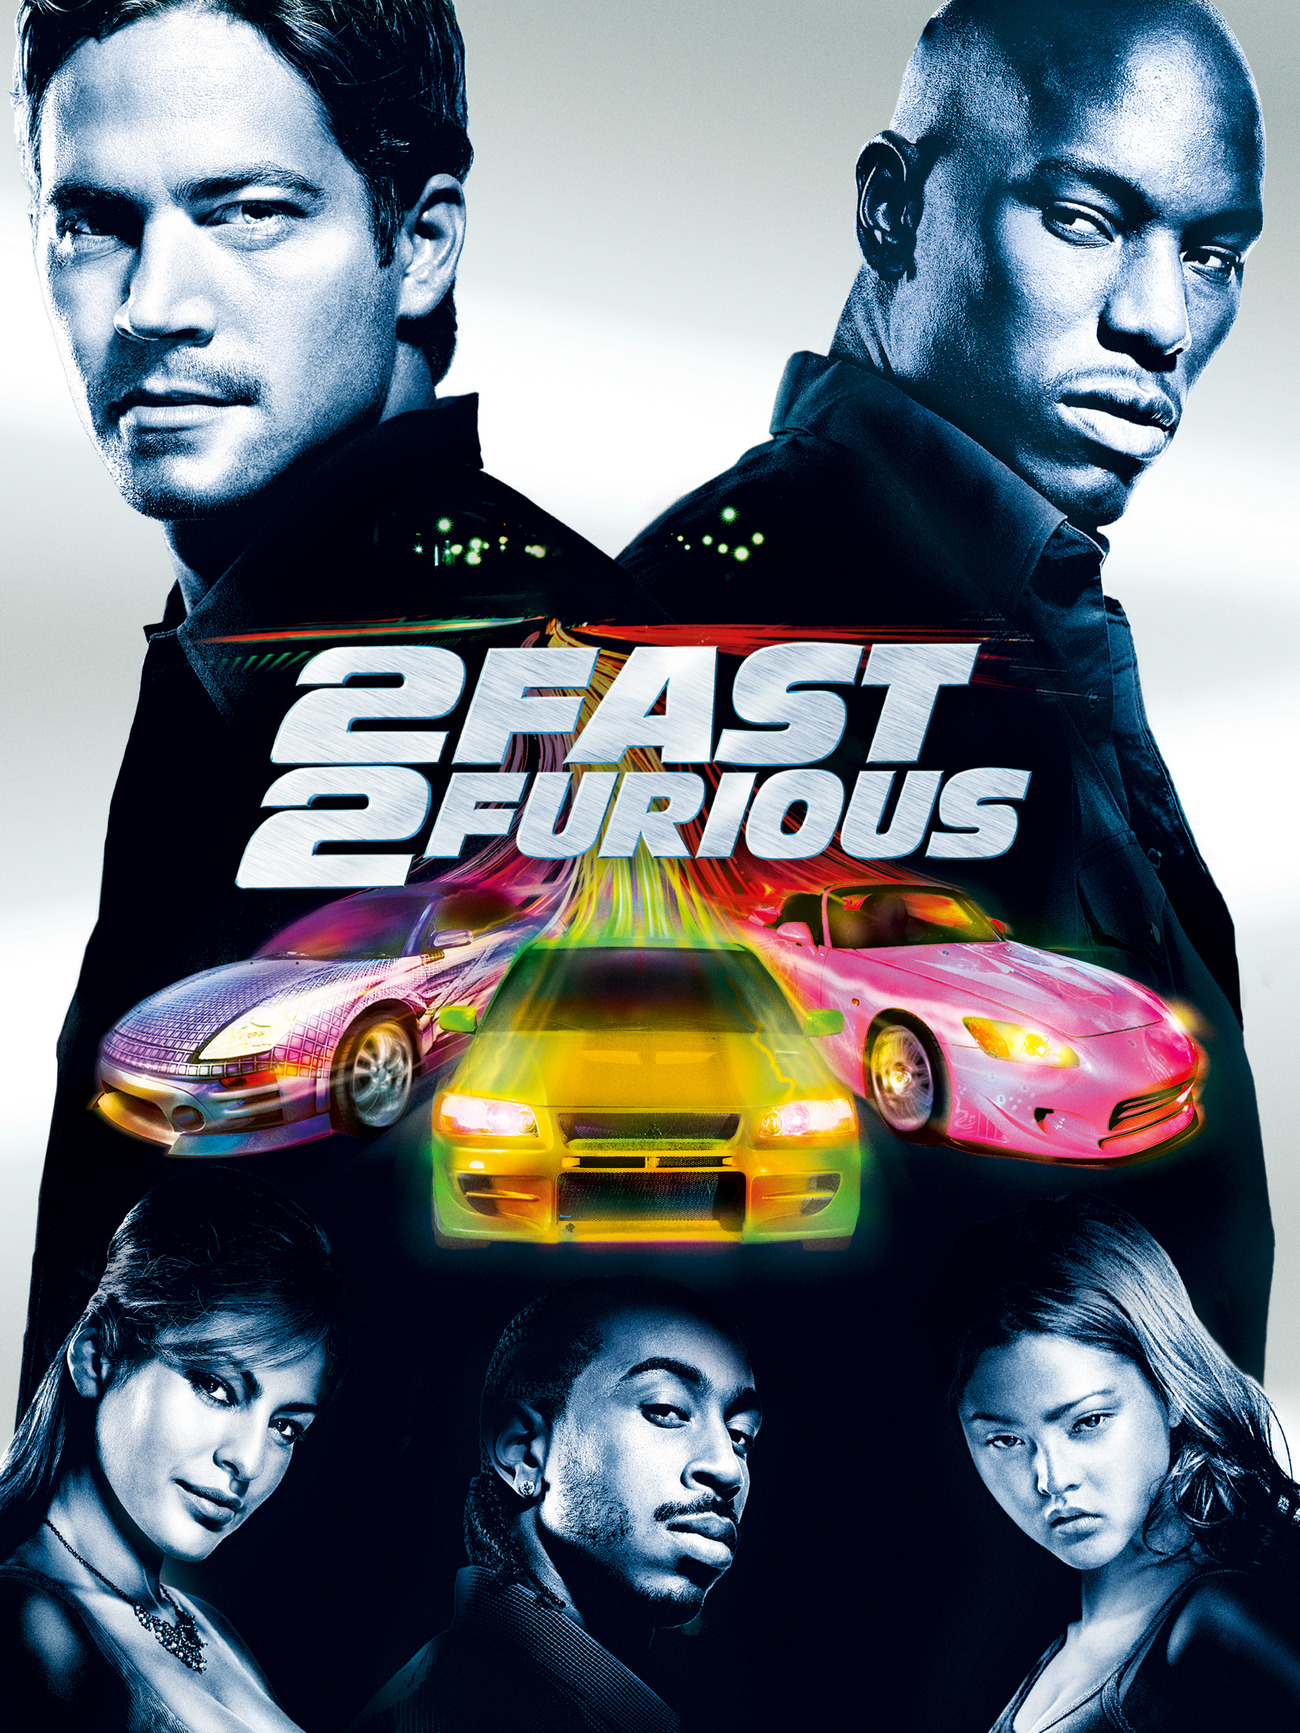 2 Fast 2 Furious Pics, Movie Collection